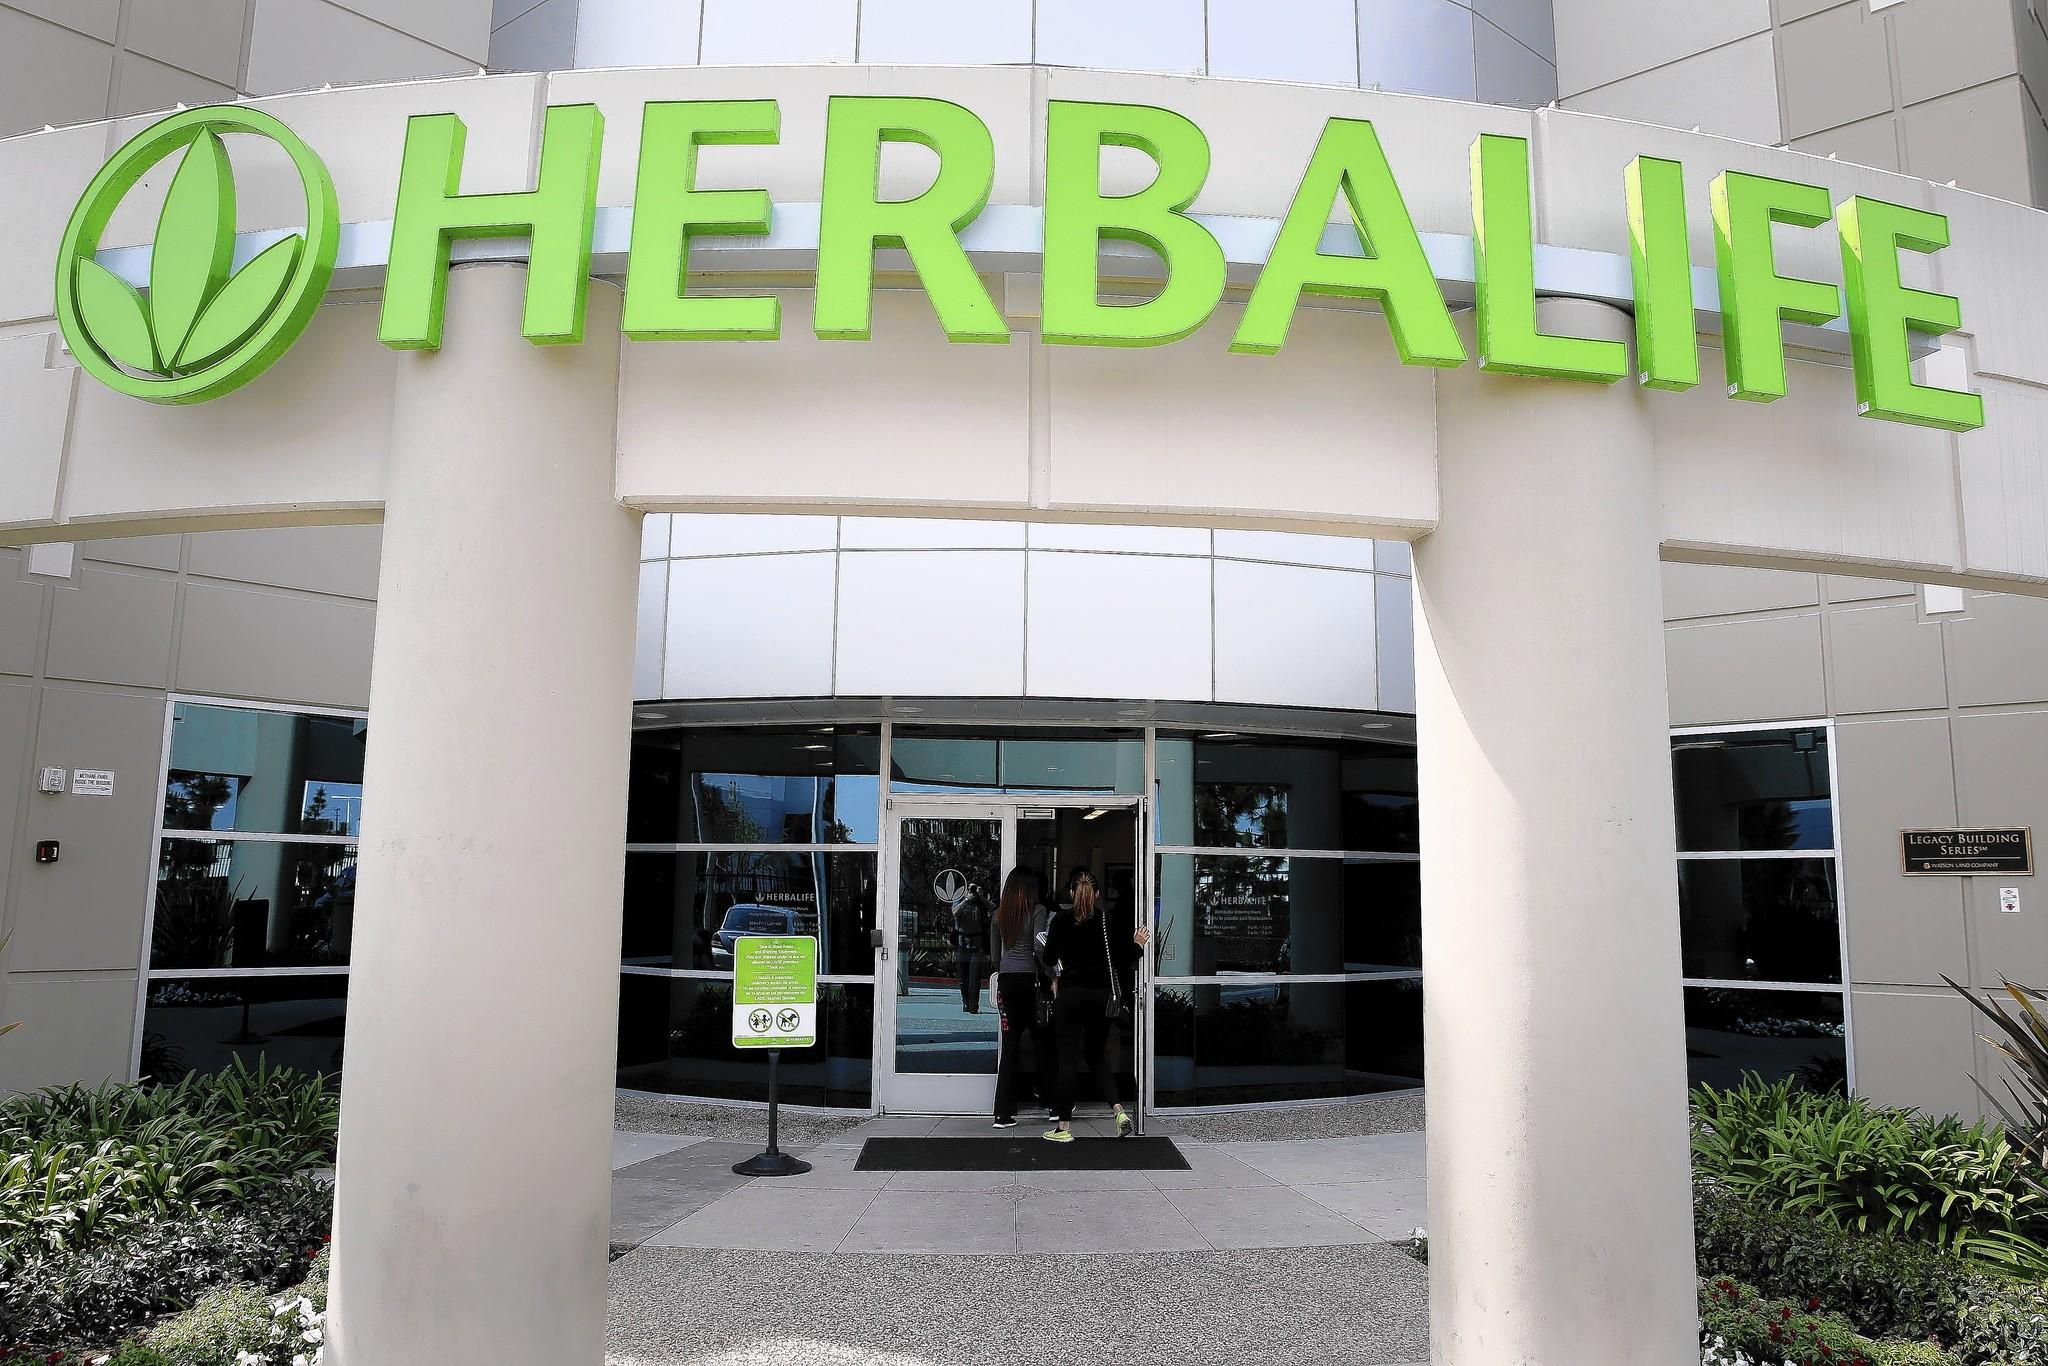 Law enforcement sources have confirmed that the U.S. Justice Department and FBI have been investigating Herbalife Ltd. for several months. The company's Los Angeles distribution center in Carson, Calif., is pictured.